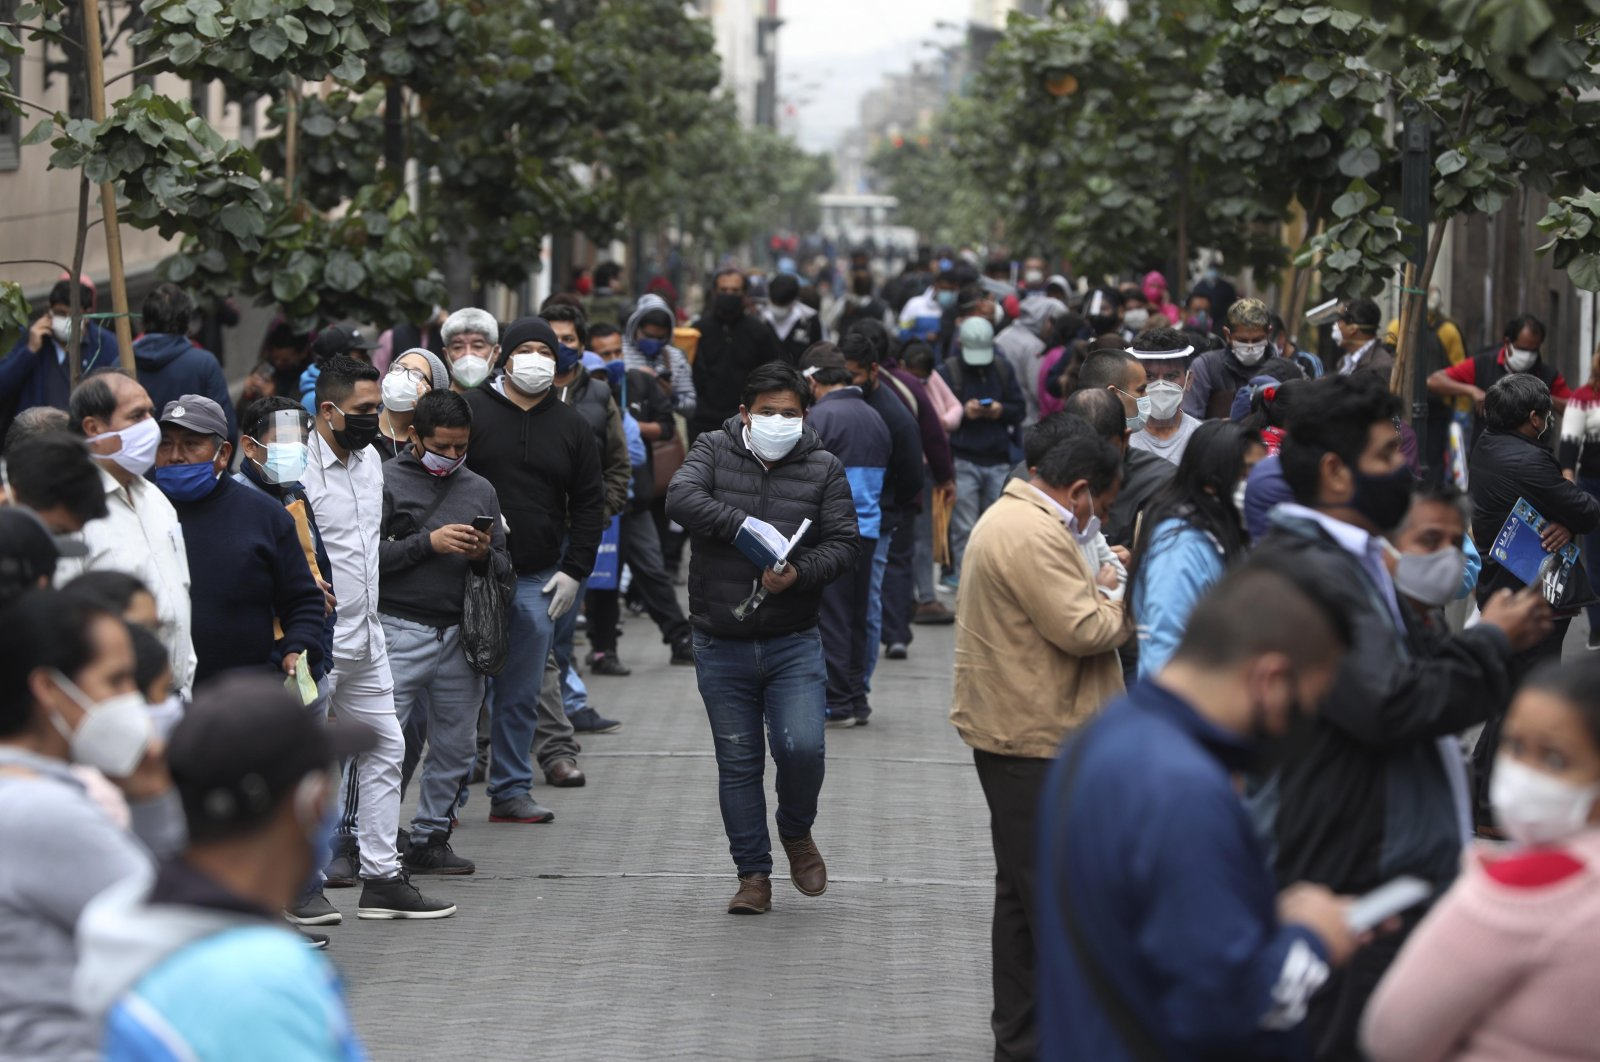 People wait in line for some businesses to reopen in downtown Lima, Peru, July 1, 2020. (AP Photo)